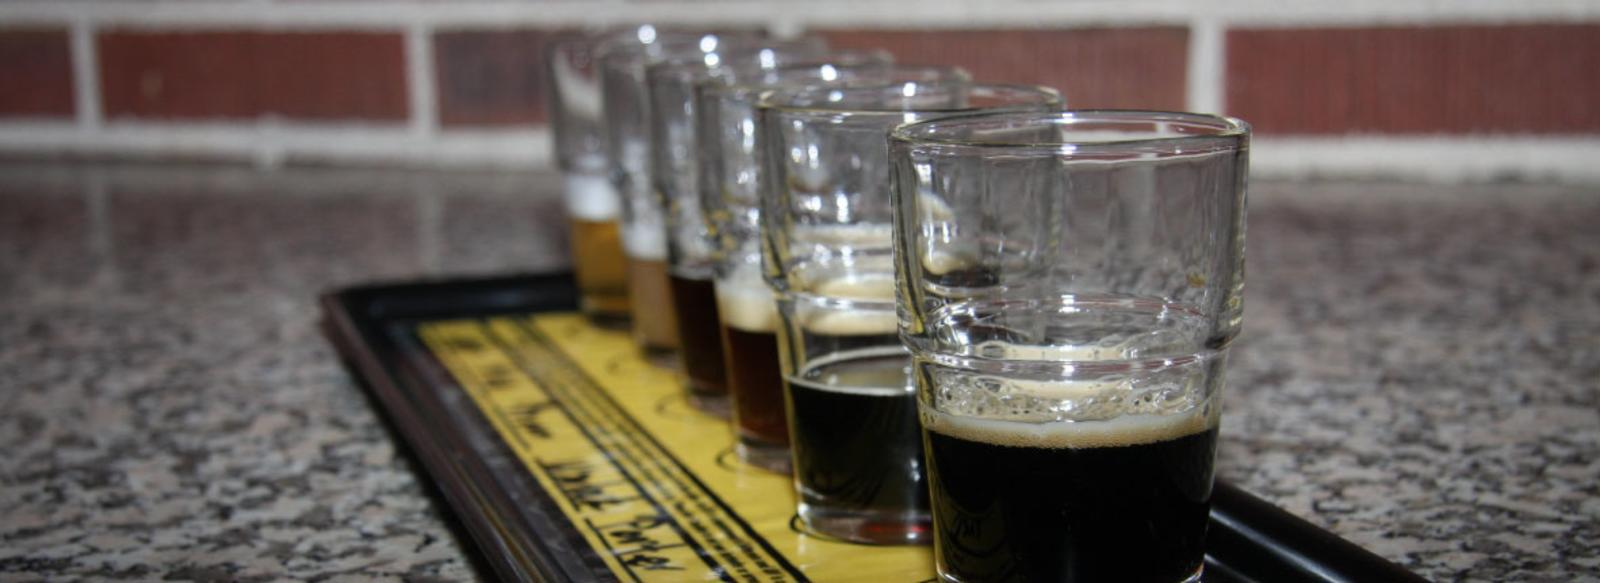 Flight-of-beer-Crown-Brewing-South-Shore-Brewery-Trail